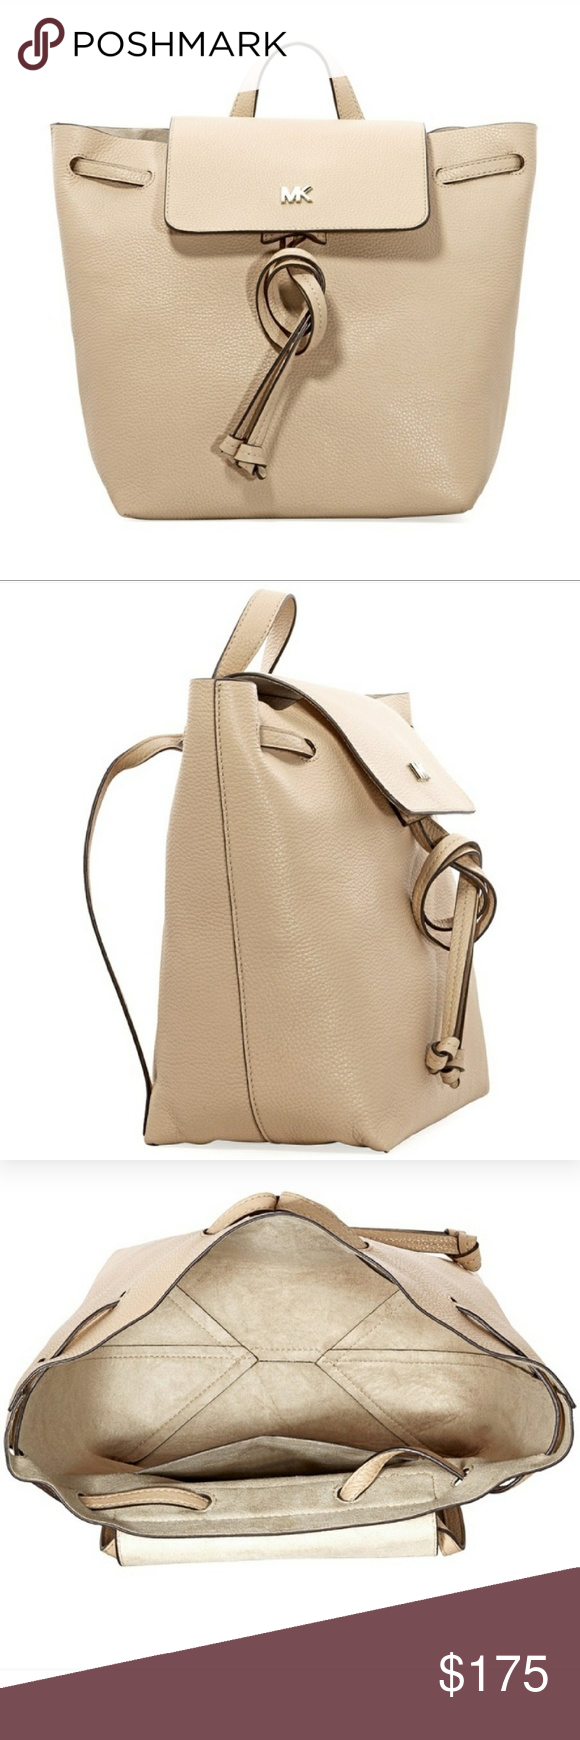 515f3772fbab Michael Kors Junie Medium Flap Backpack Michael Kors Junie Medium Flap  Backpack color is butternut, beautiful transformable bag. Great for any  occasion ...